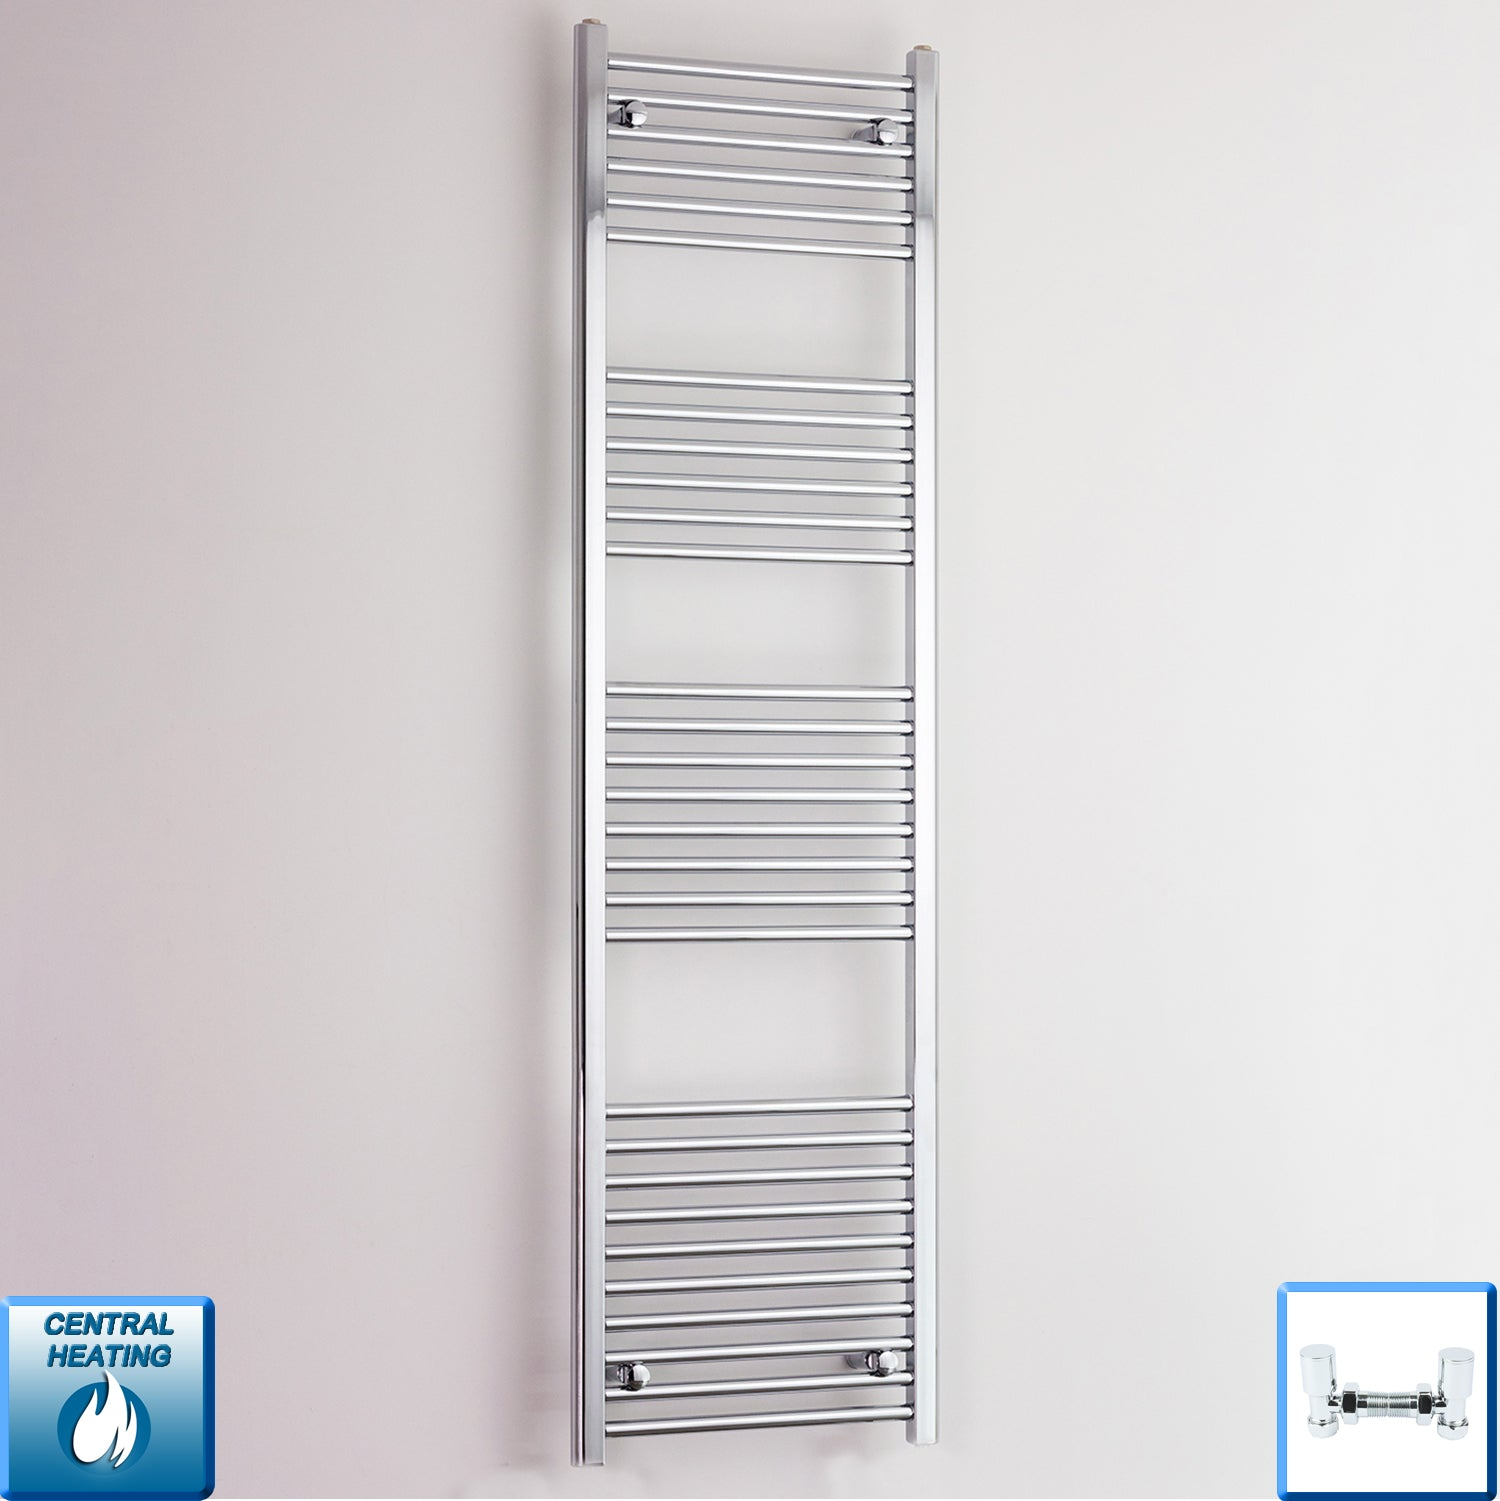 400mm Wide 1800mm High Flat Chrome Heated Towel Rail Radiator HTR,With Angled Valve